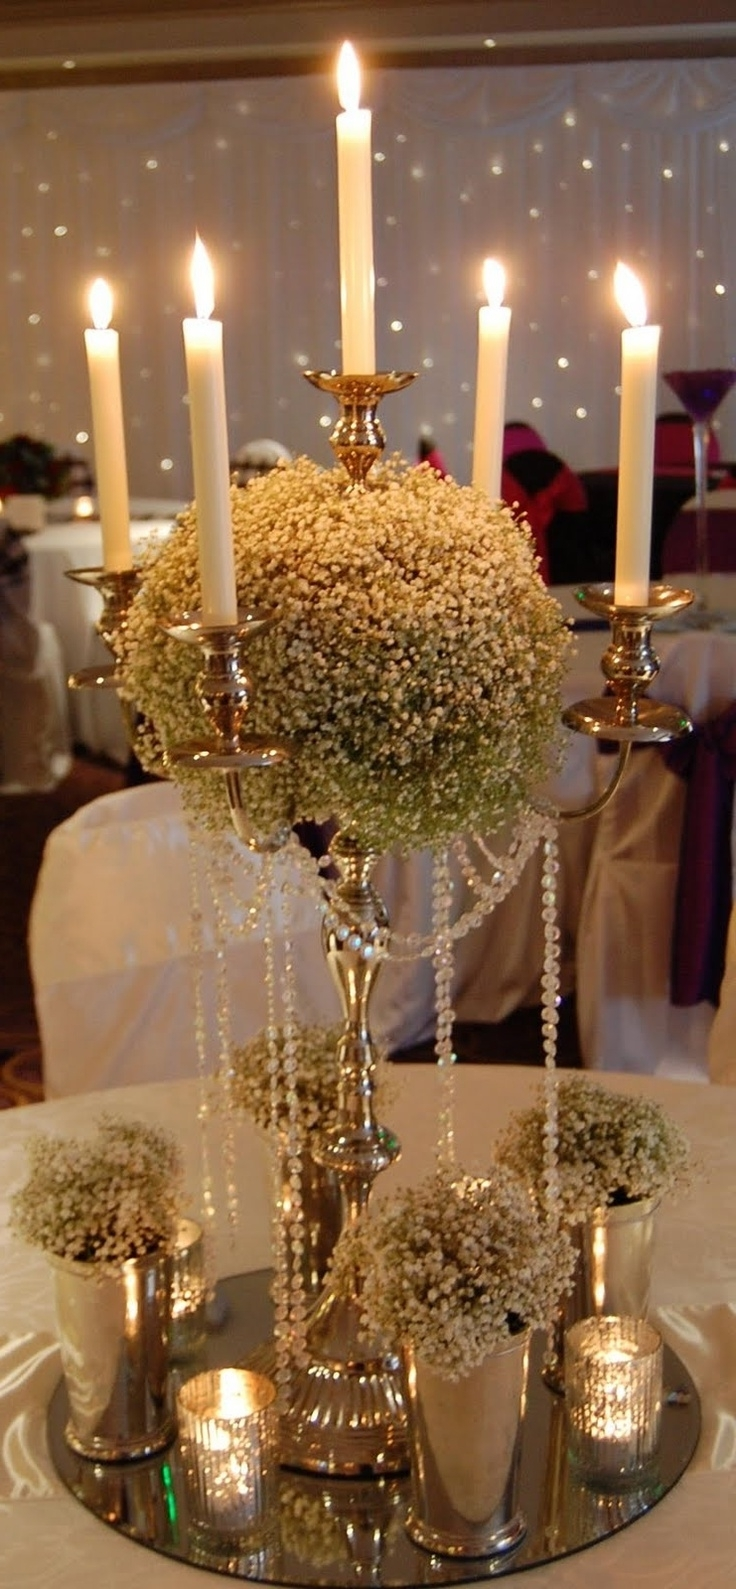 Faux Crystal Chandelier Centerpieces For Preferred 411 Best Flower Arrangement Images On Pinterest (View 2 of 15)